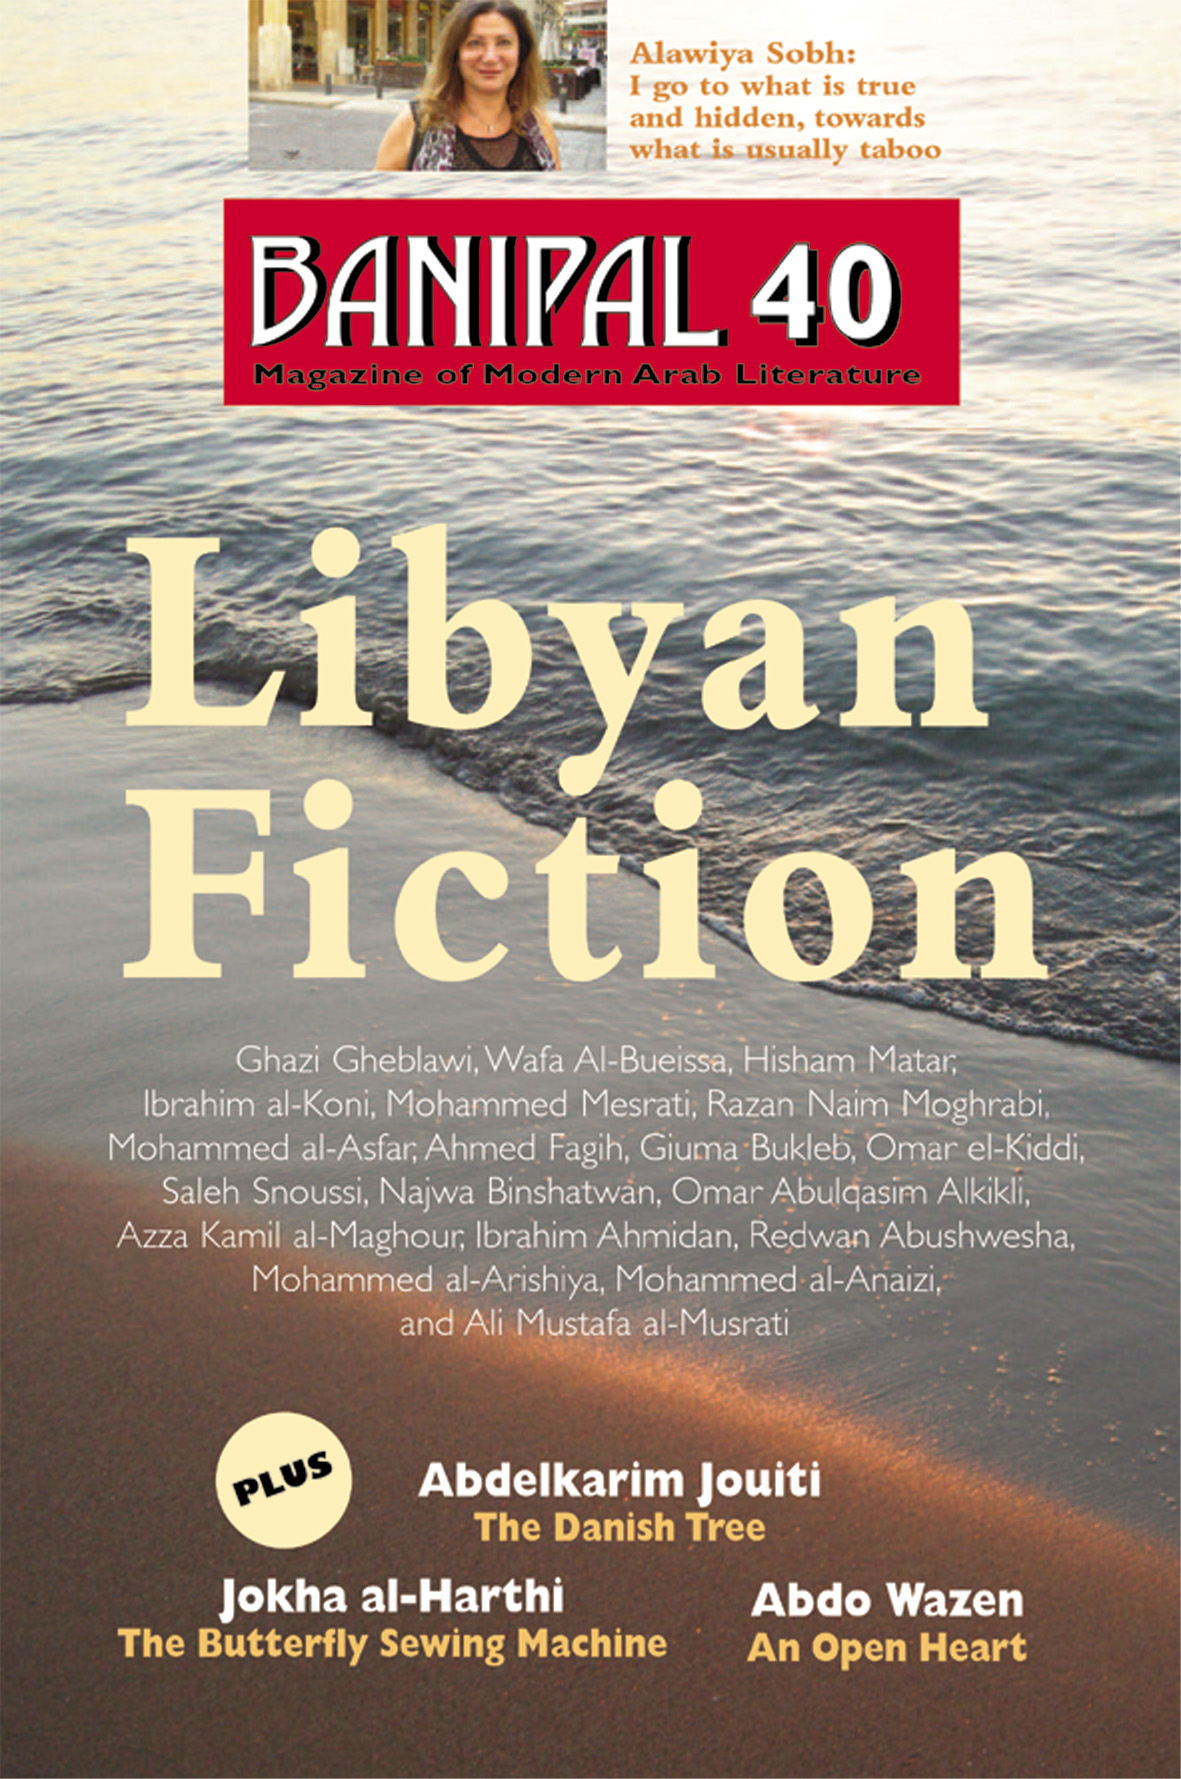 Banipal 40 – Libyan Fiction